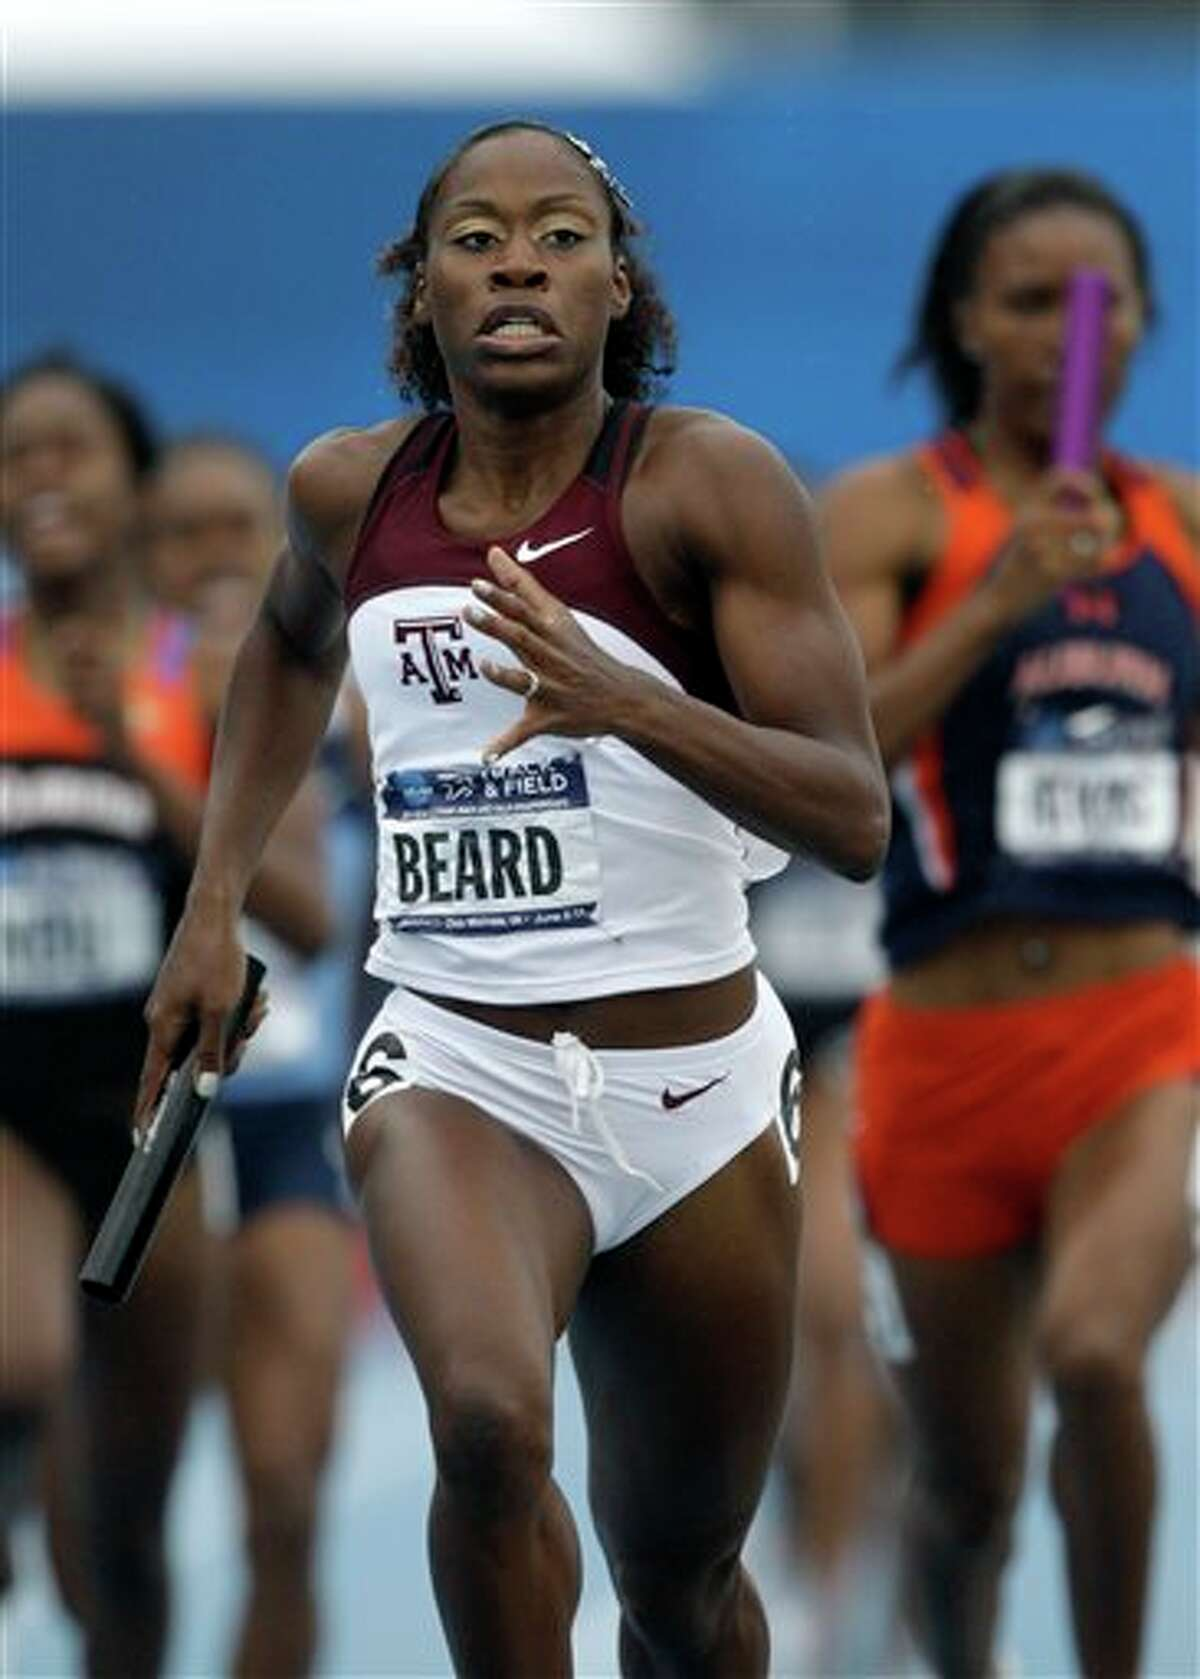 Texas A&M's Jessica Beard anchors her team in a 1600-meter relay prelim at the NCAA outdoor track and field championships, Friday, June 10, 2011, at Drake Stadium in Des Moines, Iowa. (AP Photo/Charlie Neibergall)